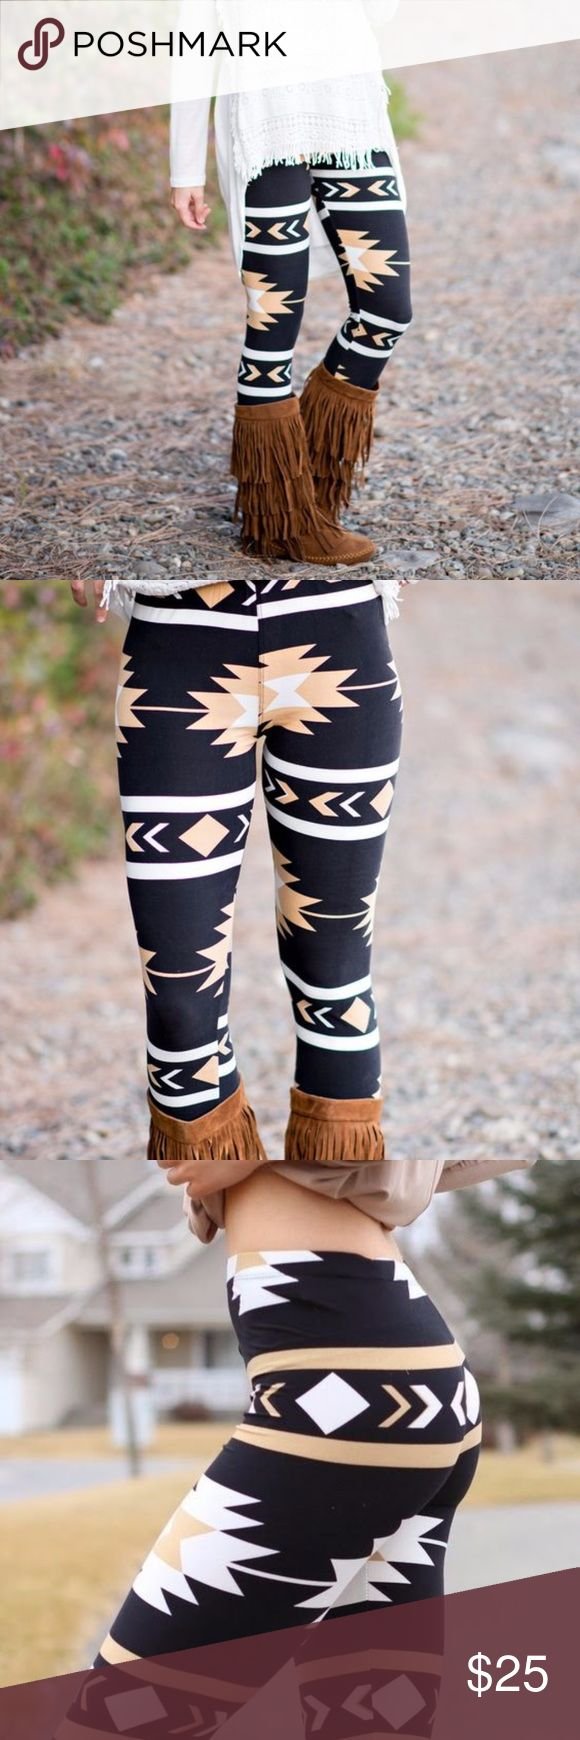 Golden Navajo Aztec Print Leggings Trending! Golden Yellow, Black and White  Two compositions of premium fabric; 92% Polyester and 8% Spandex These are one size fits all sizing. They are super stretchy in one size fits all in size range Regular size leggings cover from 0 to 12, plus size leggings cover from 14 to 24. Fits mid natural waist   Boutique items come NWOT, direct from makers :)   Available in other color options in my closet! *CURRENTLY SOLD OUT OF PLUS SIZE IN THIS GOLD COLOR…